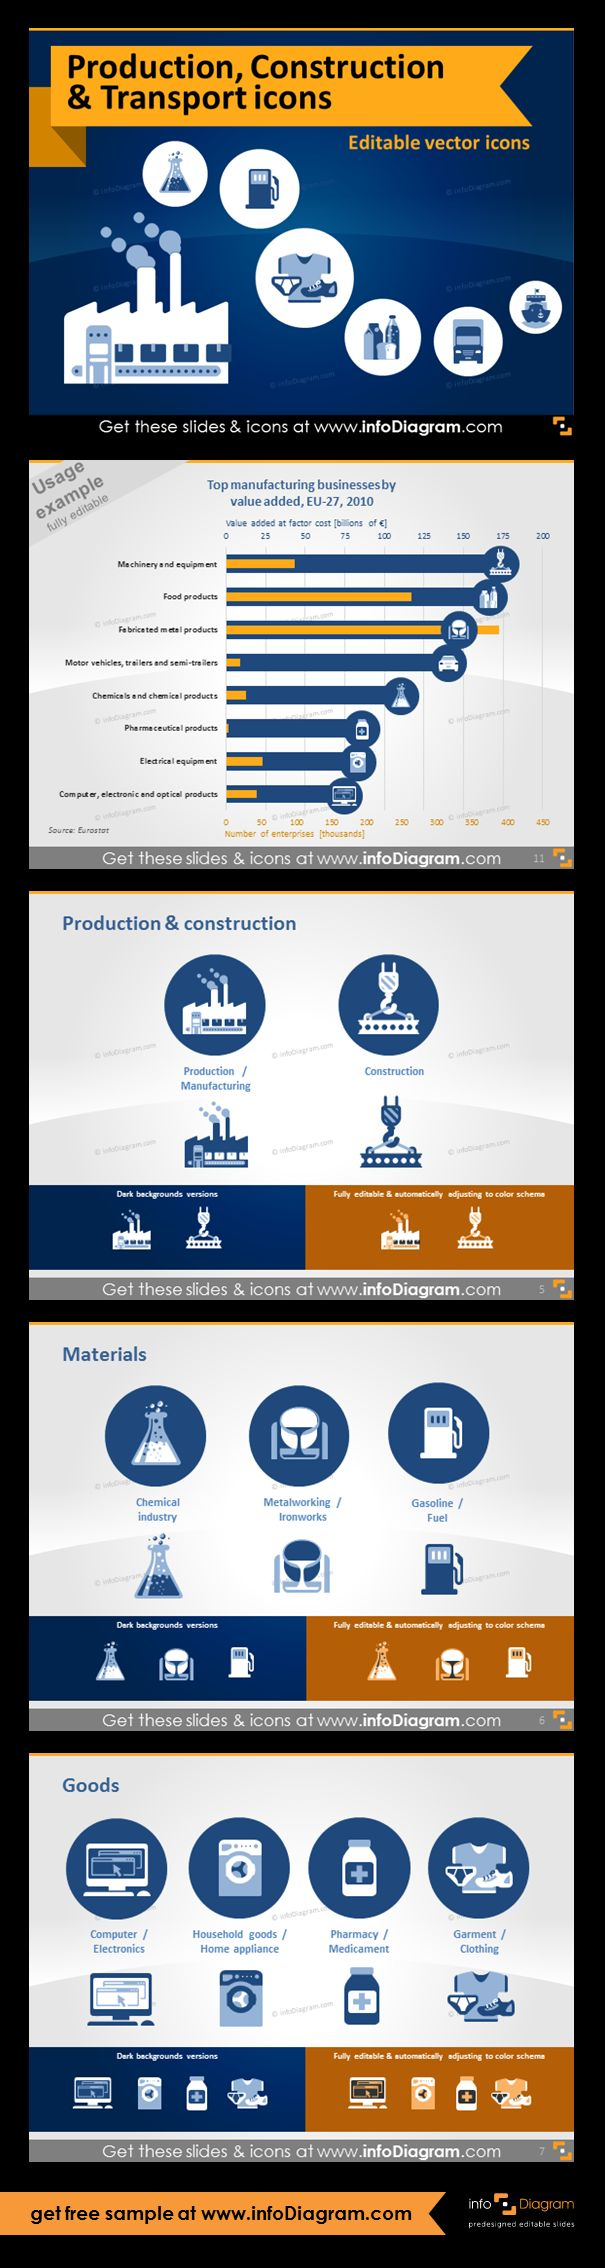 Industry Symbols for PowerPoint: production, construction, materials, chemical industry, metalworking, ironworks, gasoline, fuel. Example on top manufacturing business sectors by value added, EU-27, (bar chart with icons illustration).